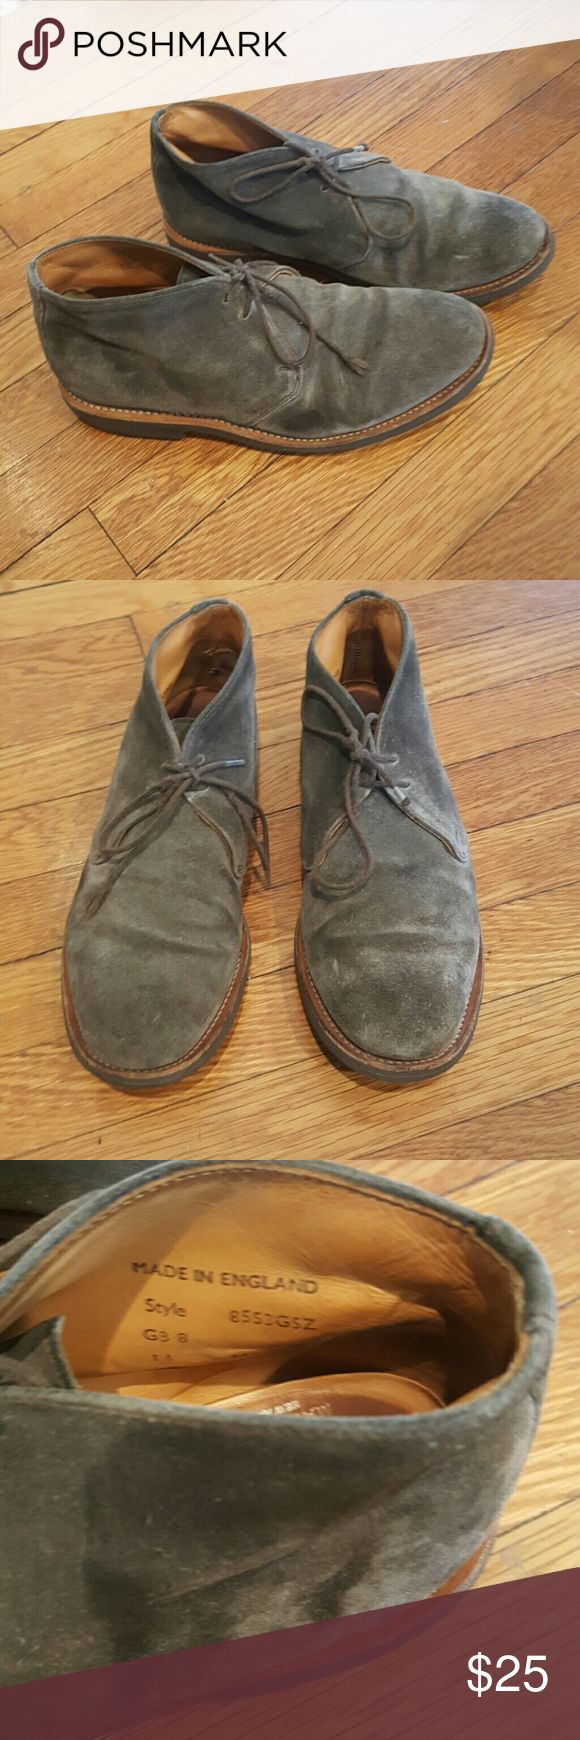 MARK MCNAIRY MADE IN ENGLAND GREY CHUKKAS MARK MCNAIRY MADE IN ENGLAND GREY SUEDE CHUKKA BOOTS ANKLE LACE UP BOOTS DRESS SHOES US 9 GOOD USED CONDITION WEAR TO SHOELACE AND ALITTLE TO HEELS LOTS OF LIFE LEFT Brooks Brothers Shoes Chukka Boots